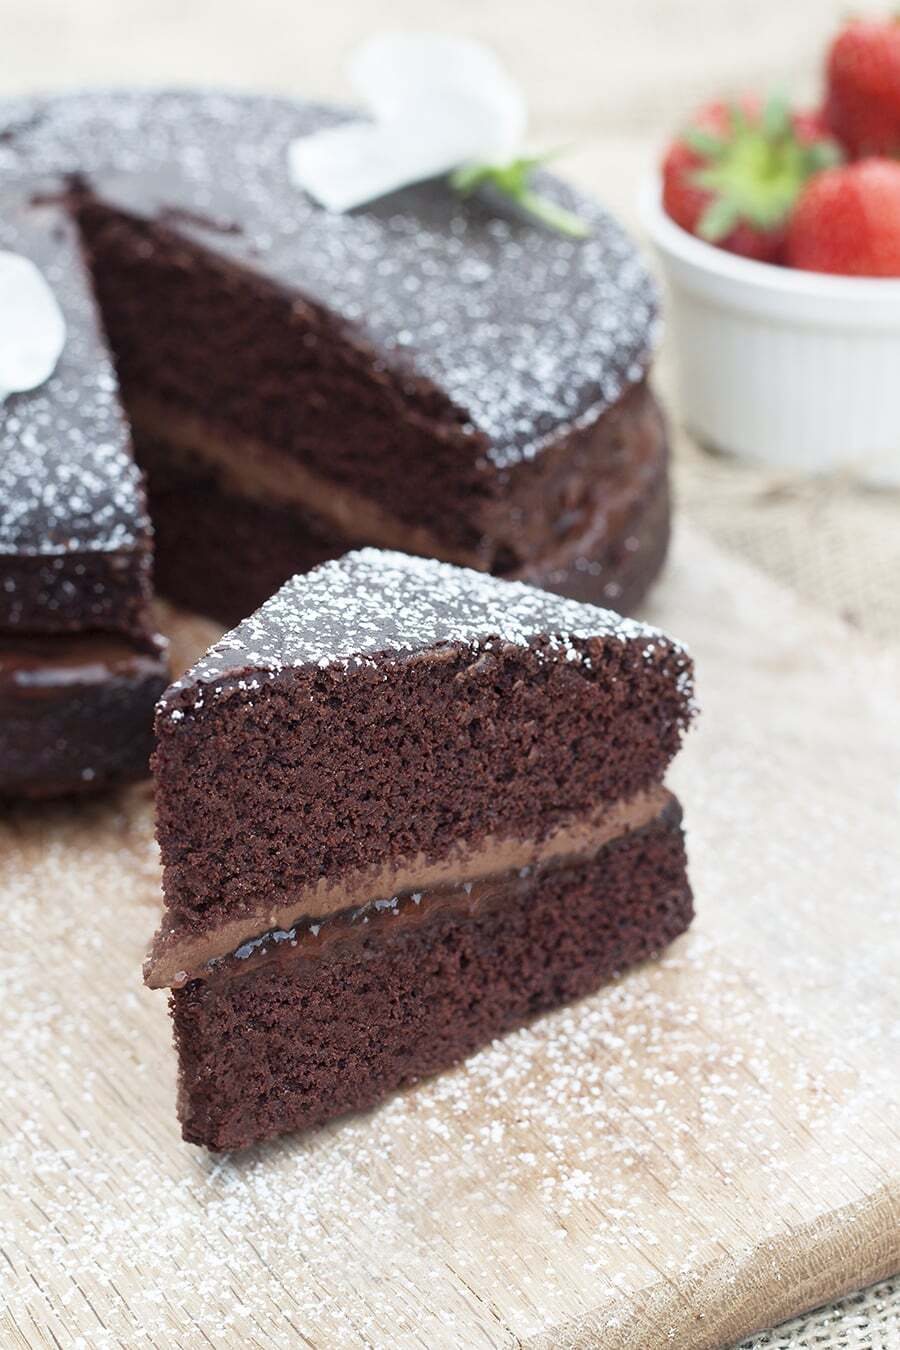 Vegan & Gluten Free Chocolate Cake Recipe